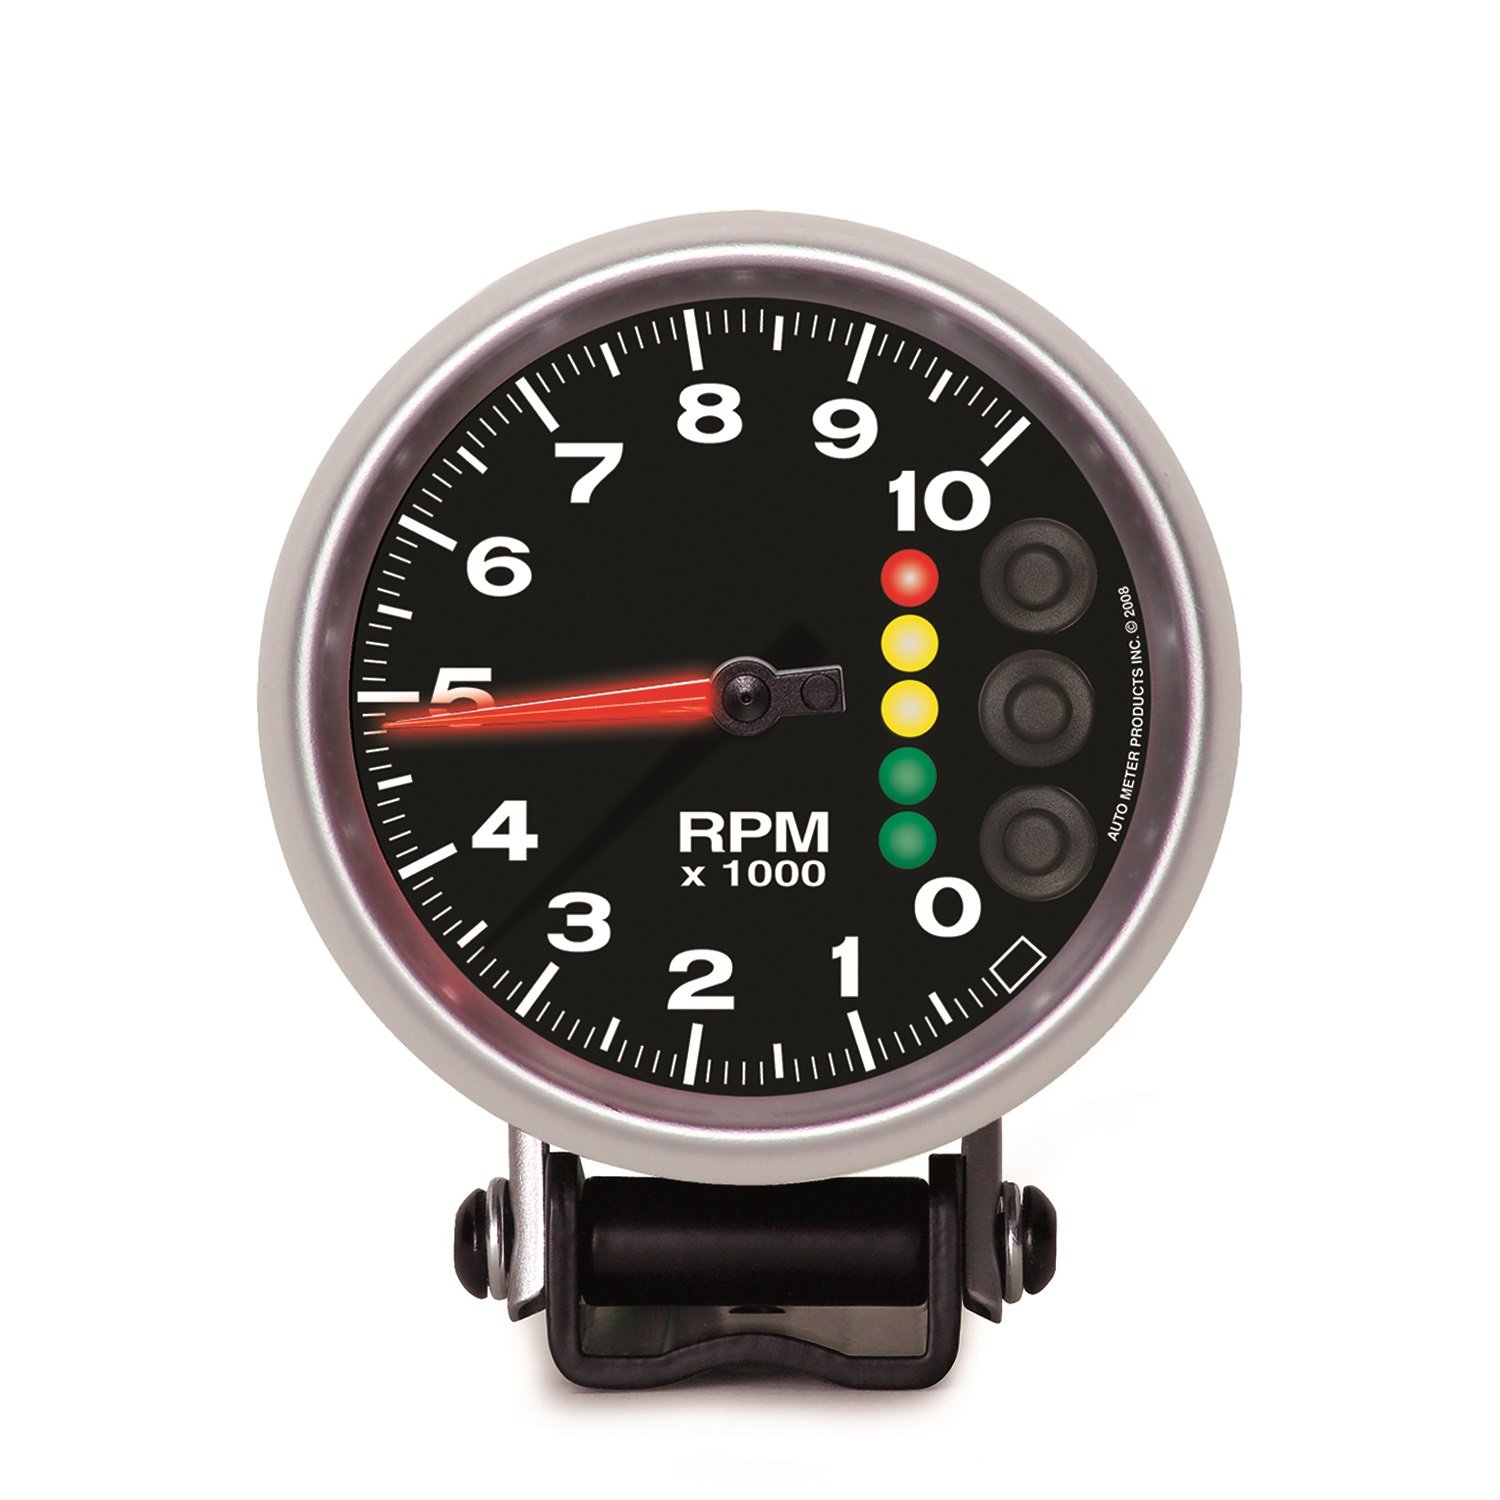 Auto Meter 6606-05705 Elite 3-3/4'' Electric Pedestal Tachometer (0-10,000 RPM, 95.3mm) by Auto Meter (Image #1)